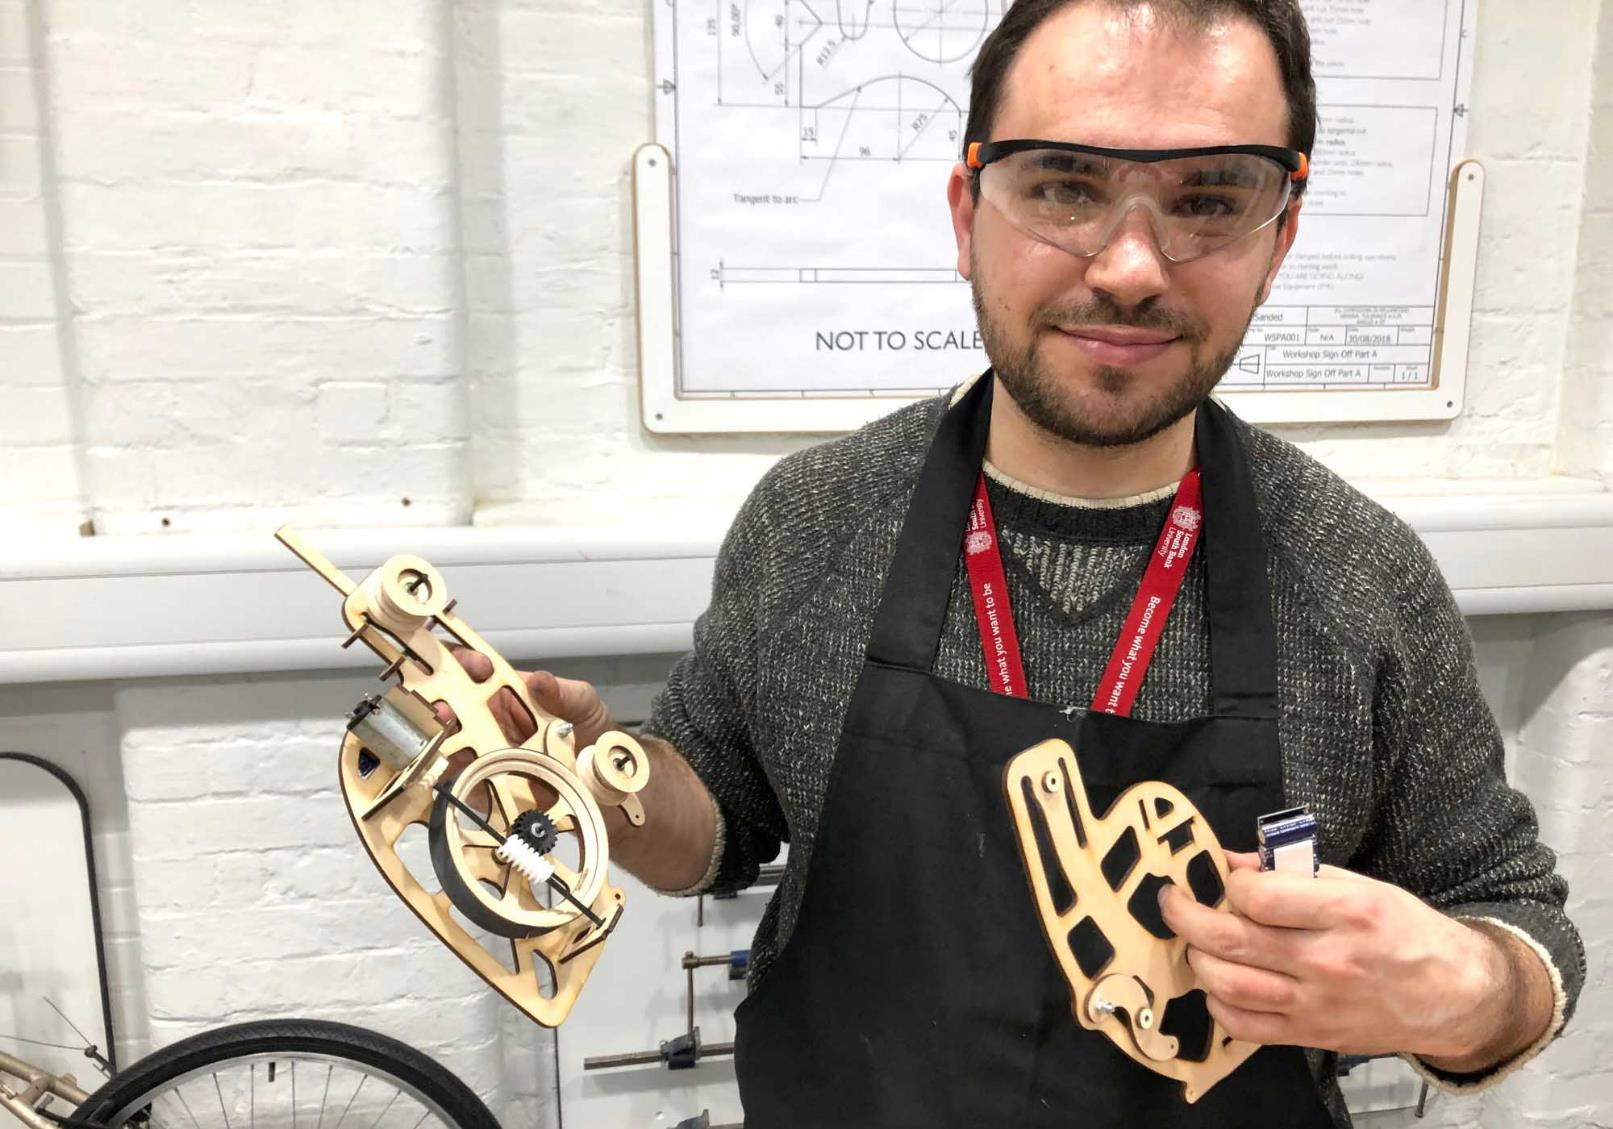 man holds things he made